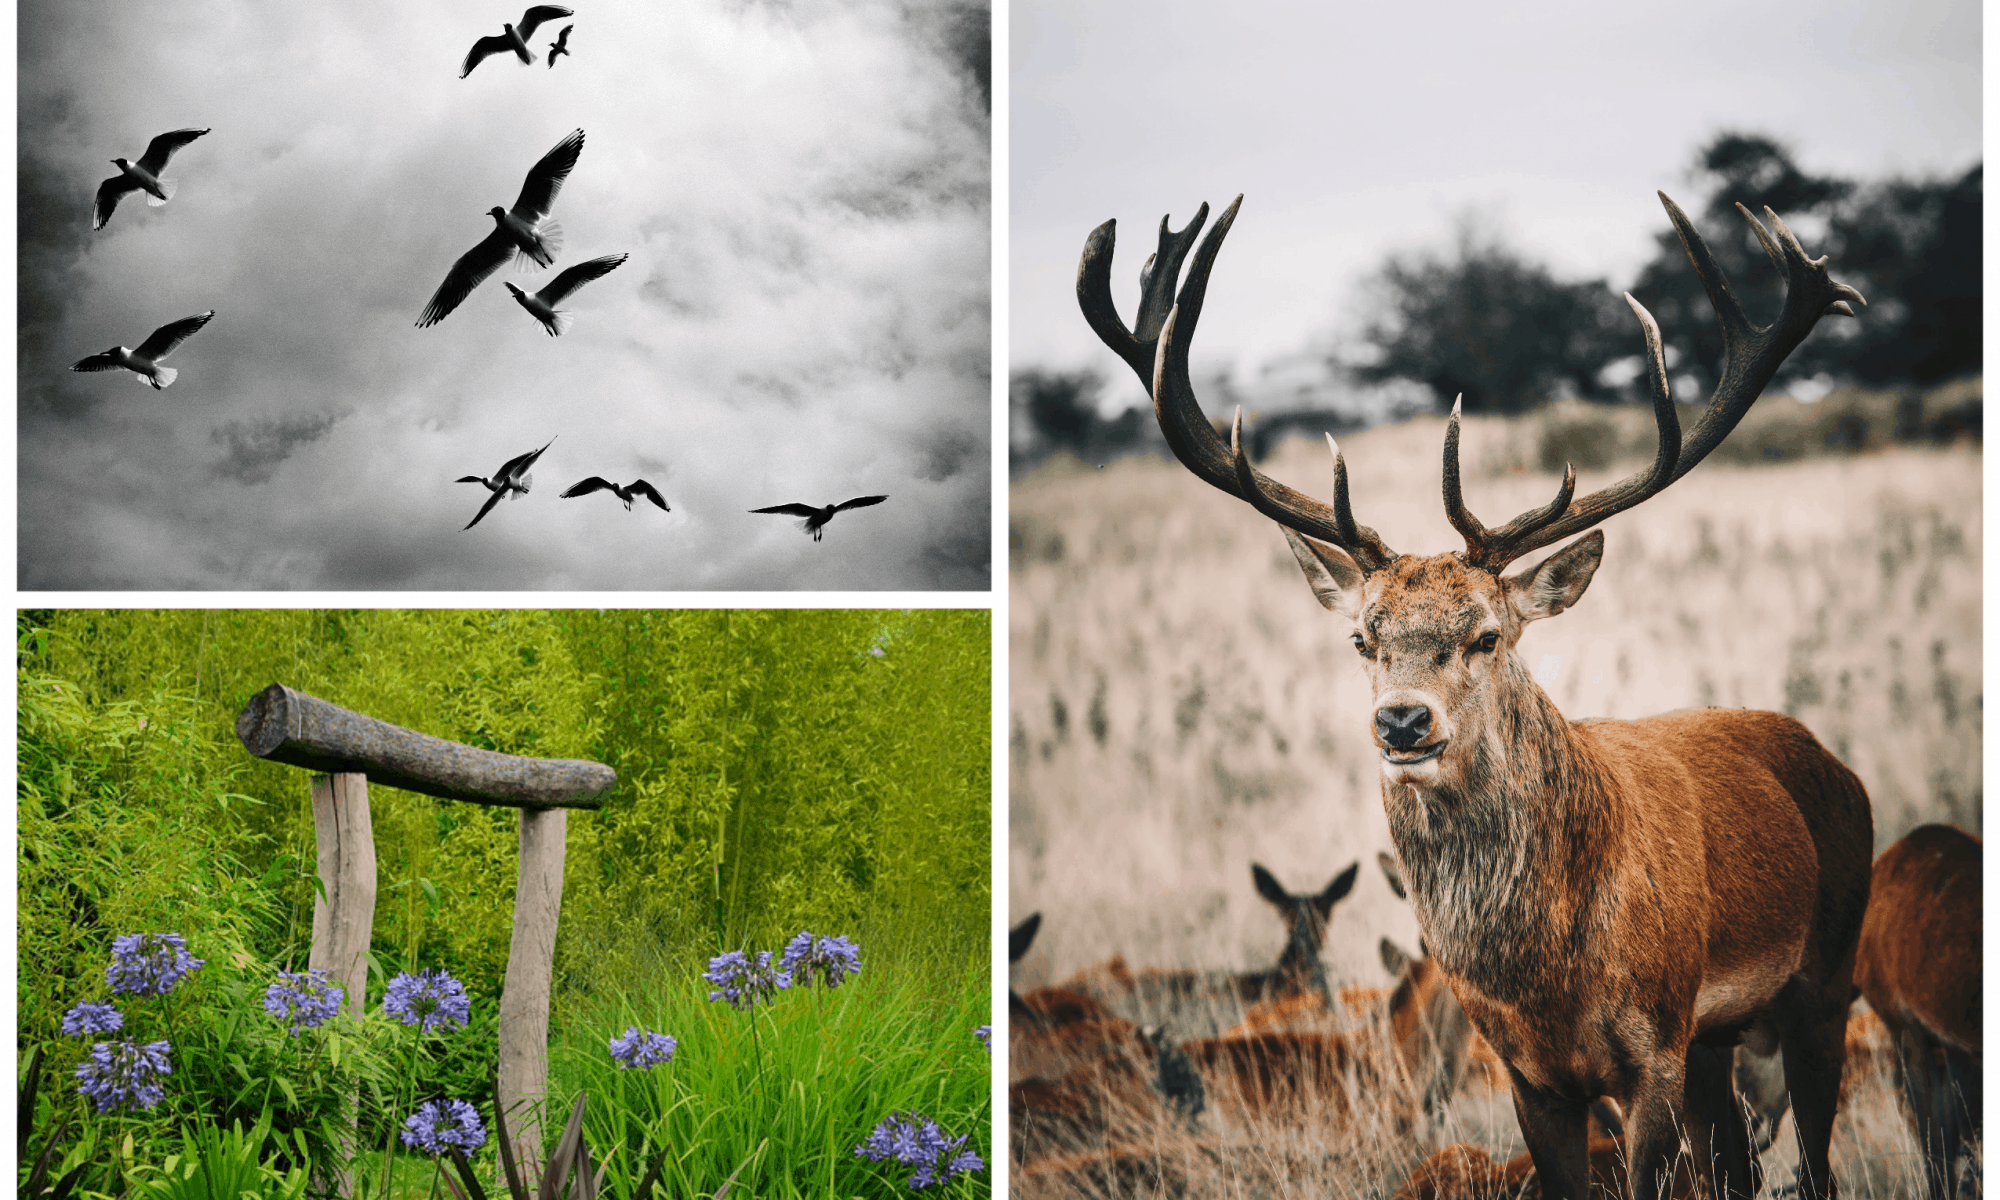 pictures of birds and deer and plants